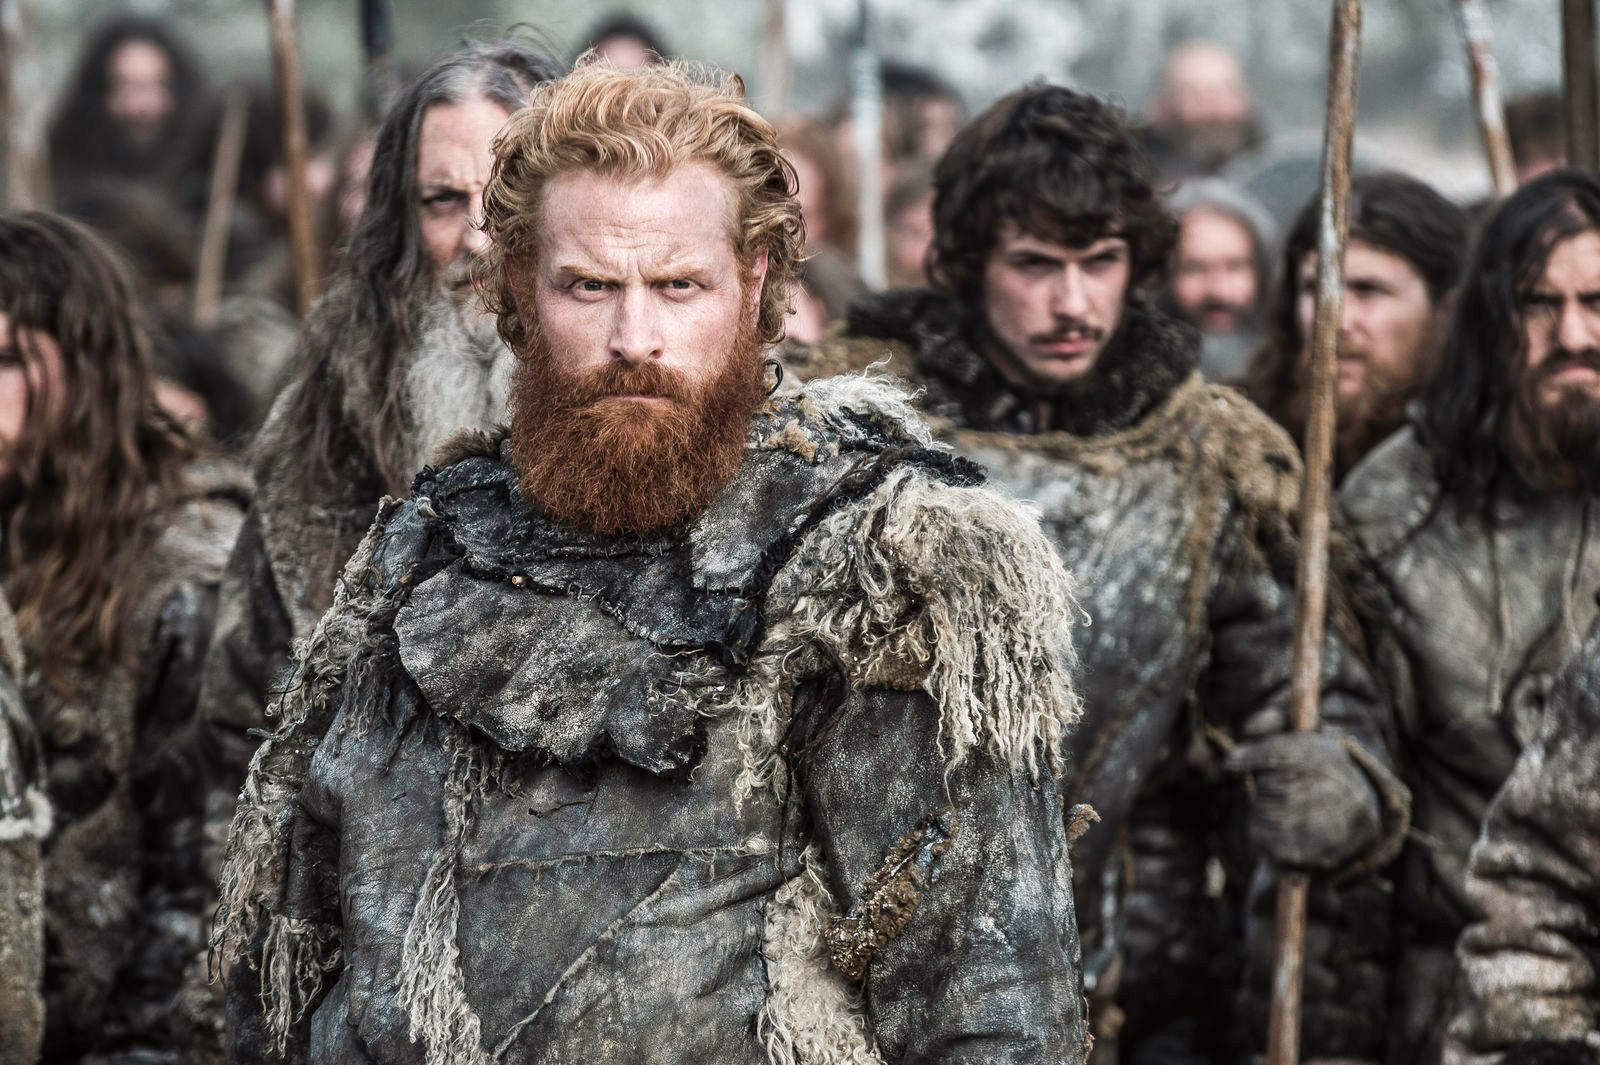 NORSK INNSLAG: Kristofer Hivju som Tormund Giantsbane i sesong 6 av «Game of Thrones».